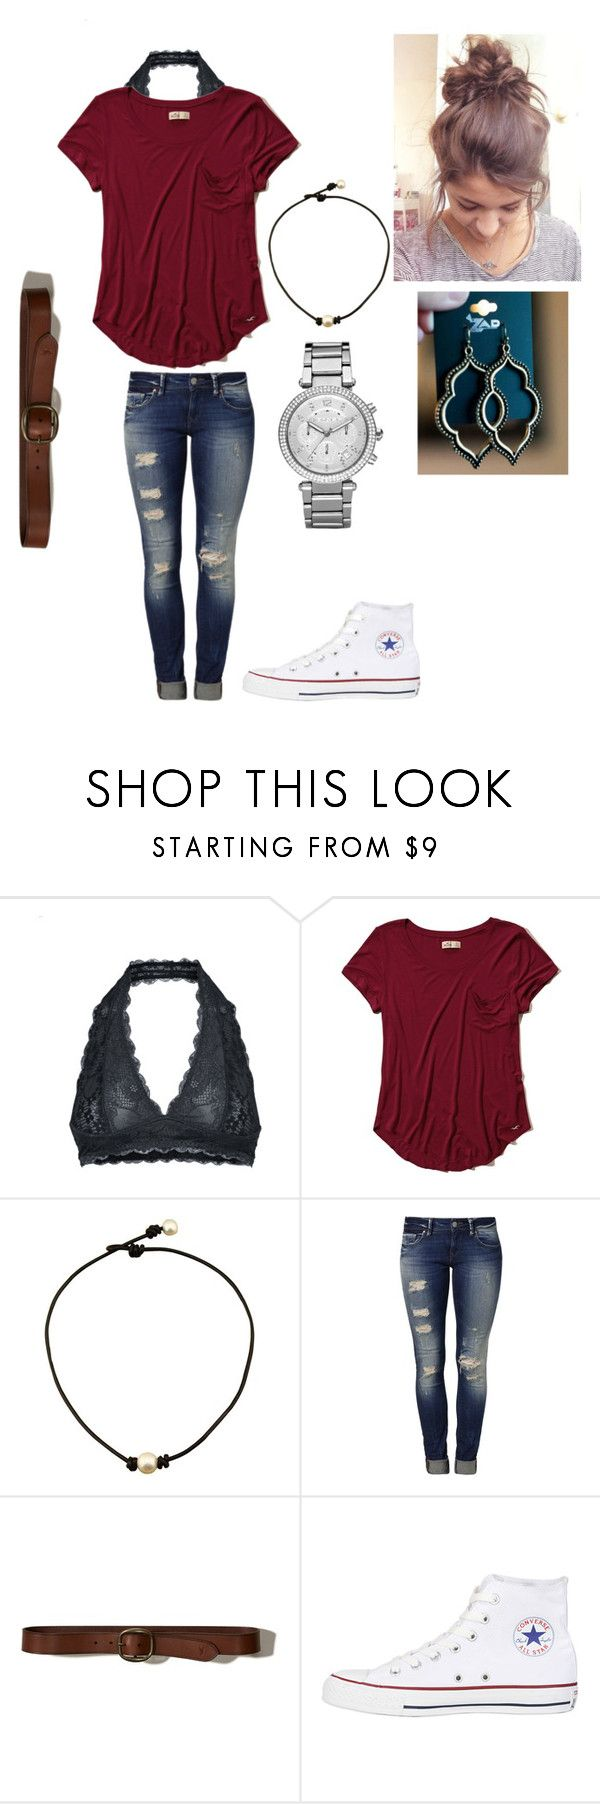 """""""Simple outfit for tomorrow😊"""" by preppysoccergirl07 ❤ liked on Polyvore featuring Free People, Hollister Co., Mavi, Converse and Michael Kors"""